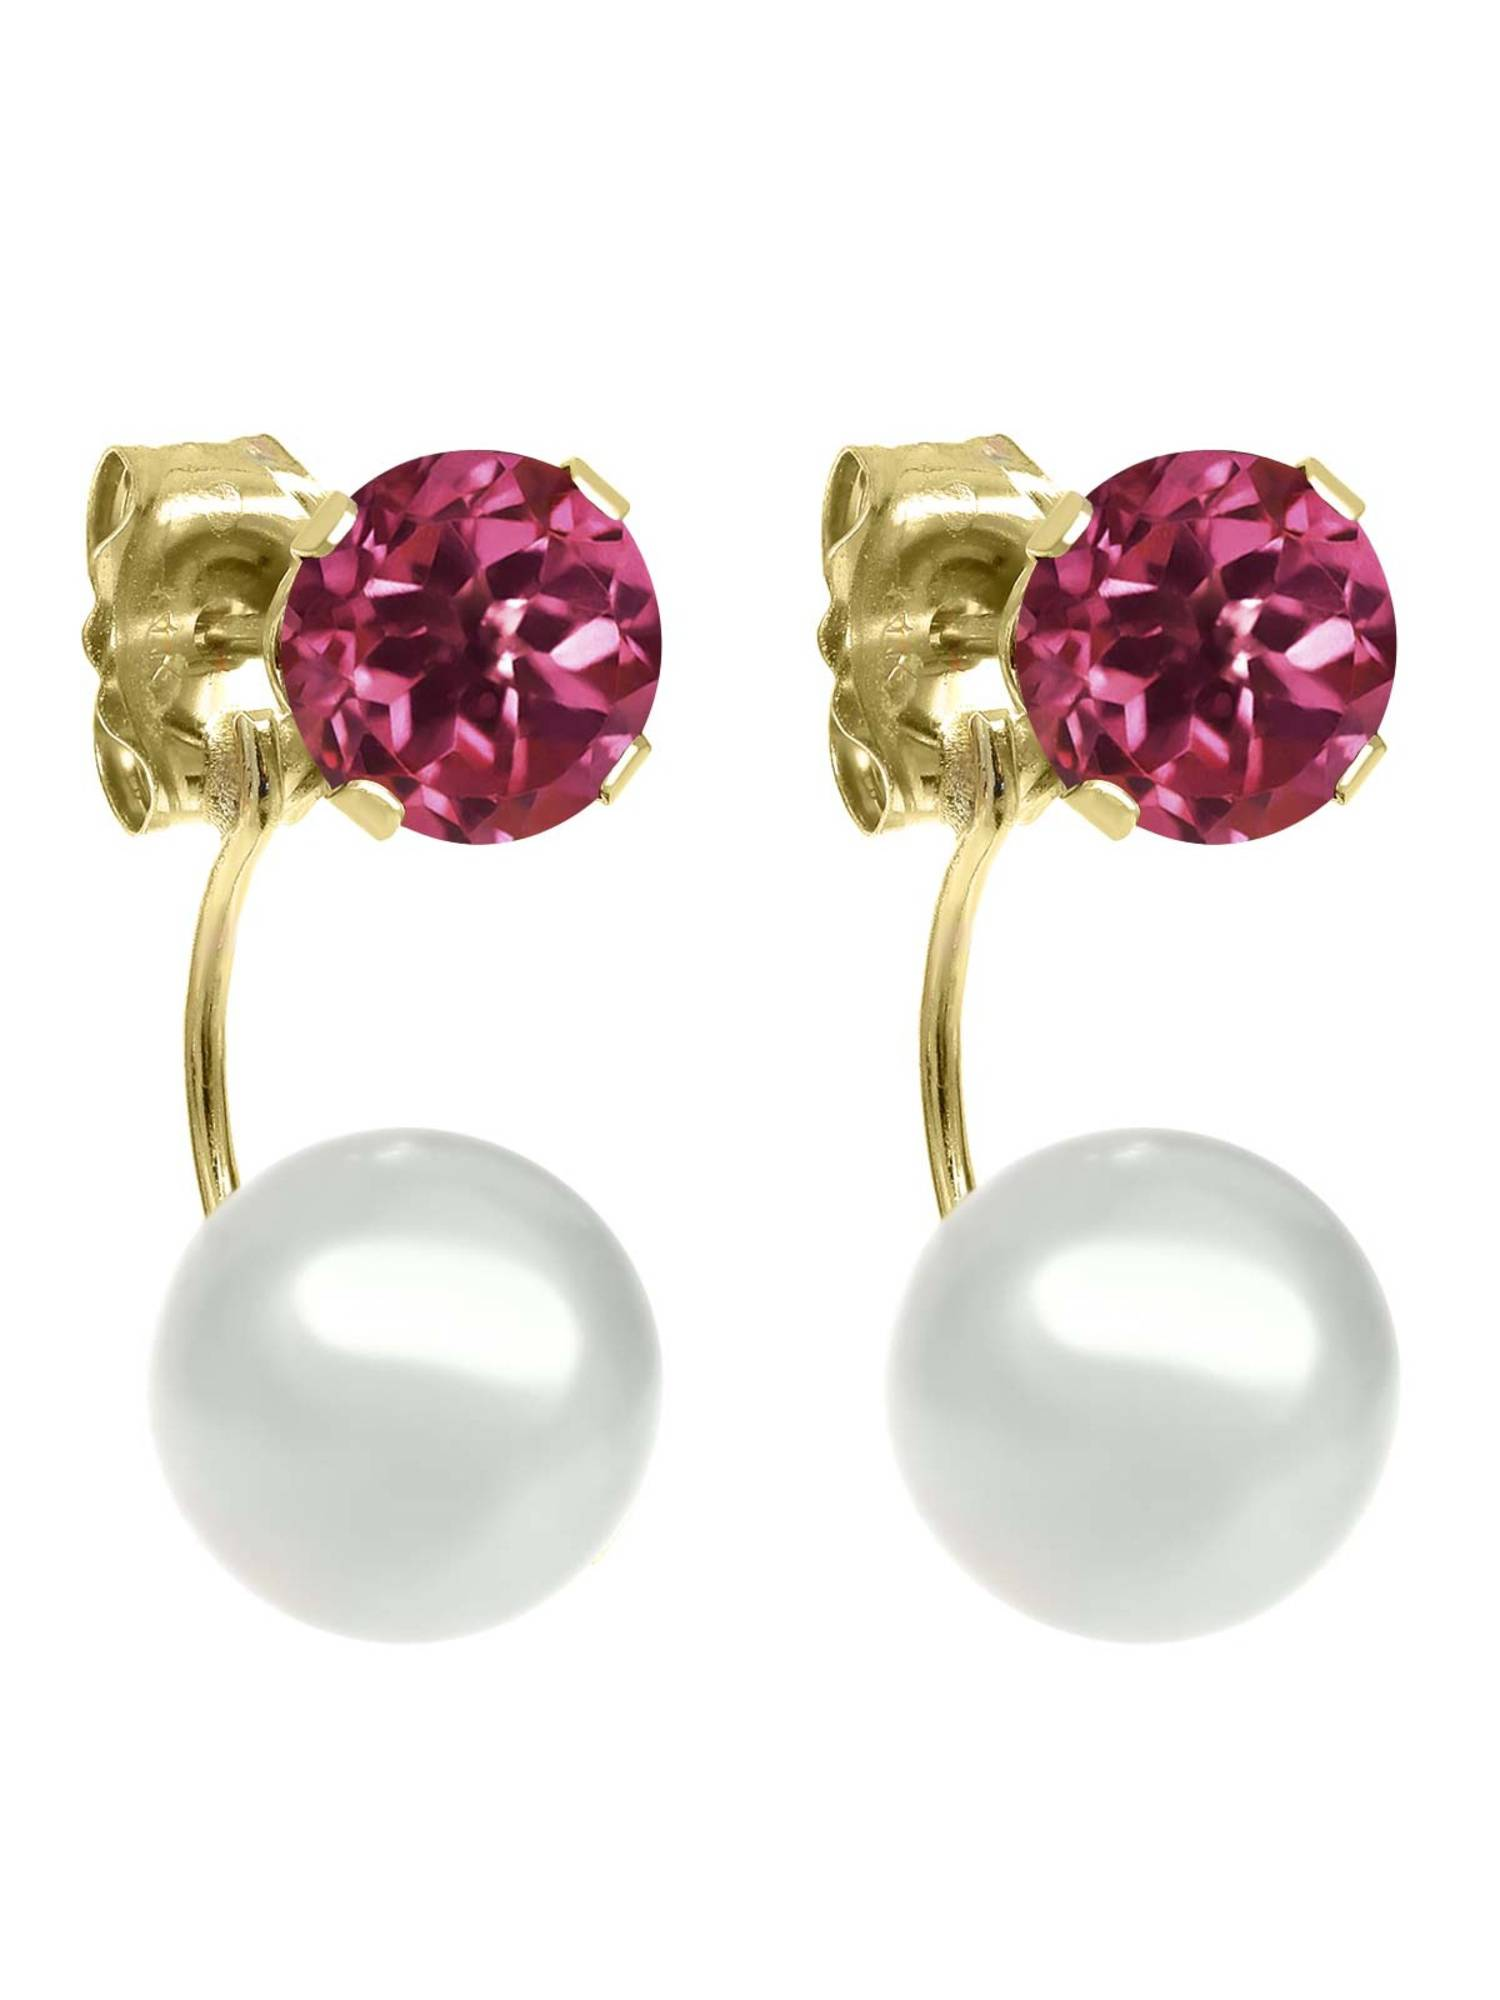 1.00 Ct Round 5mm Pink Tourmaline AA 14K Yellow Gold Stud Earrings by